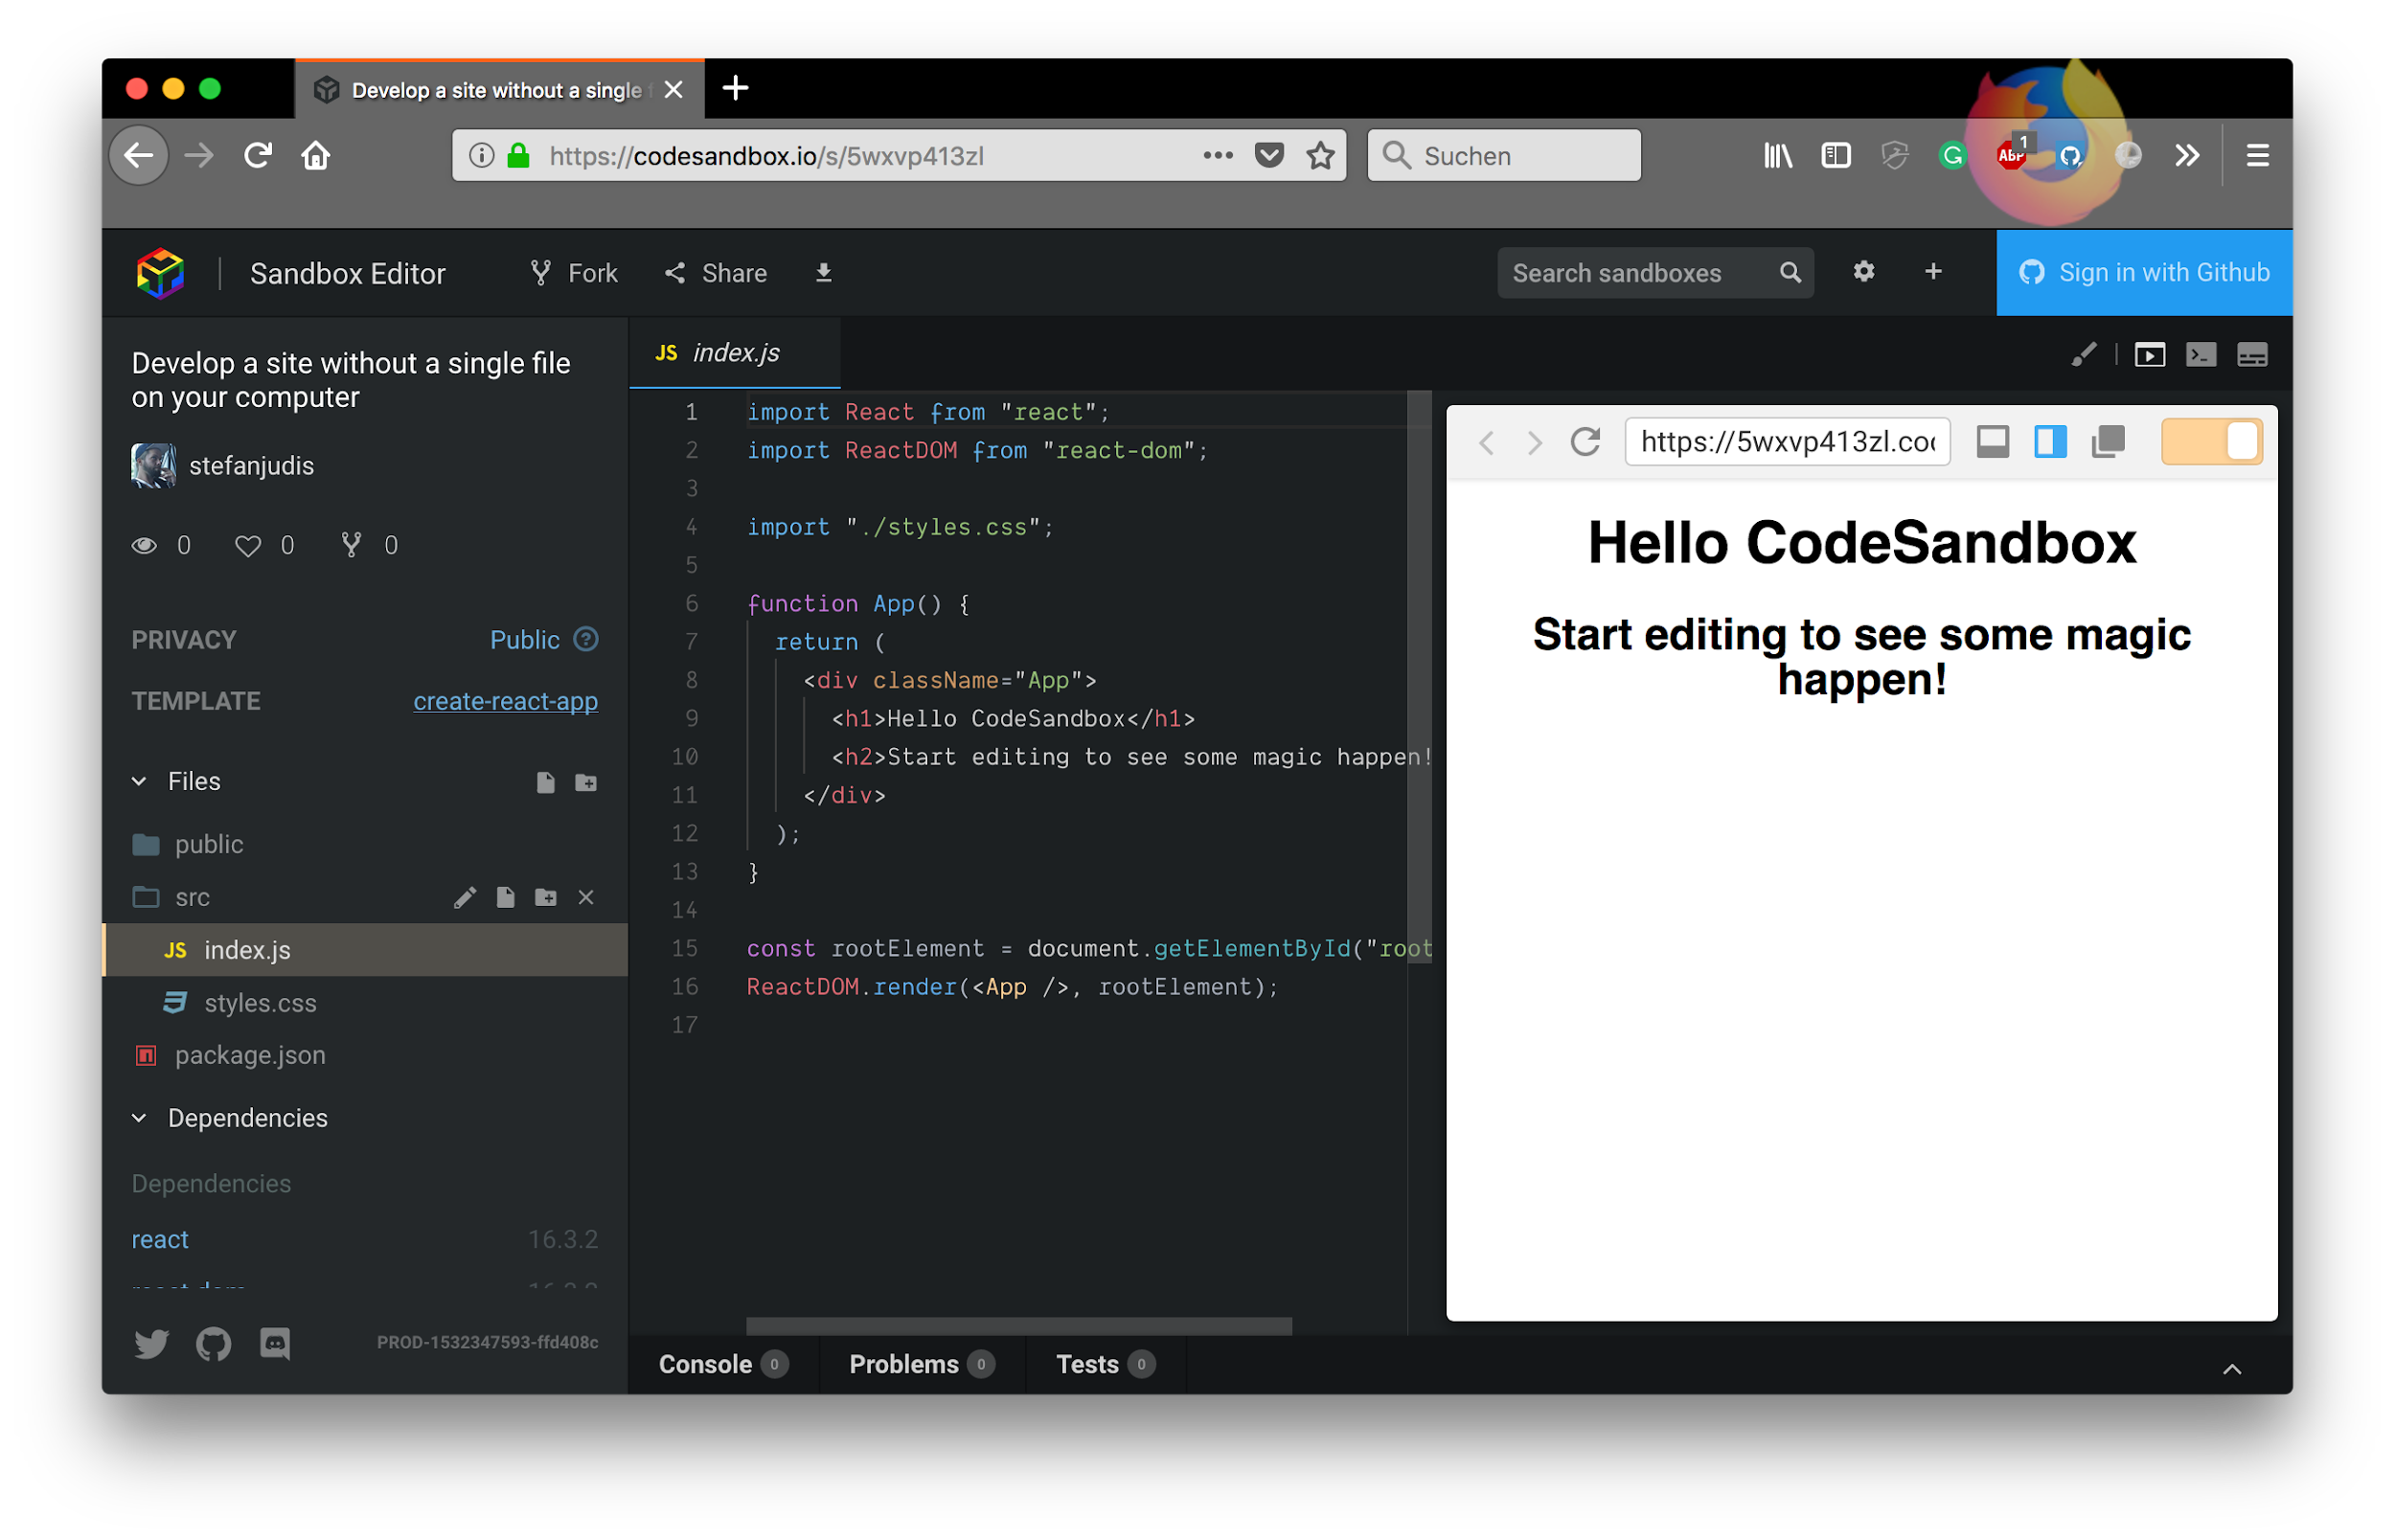 Codebase to enter React development